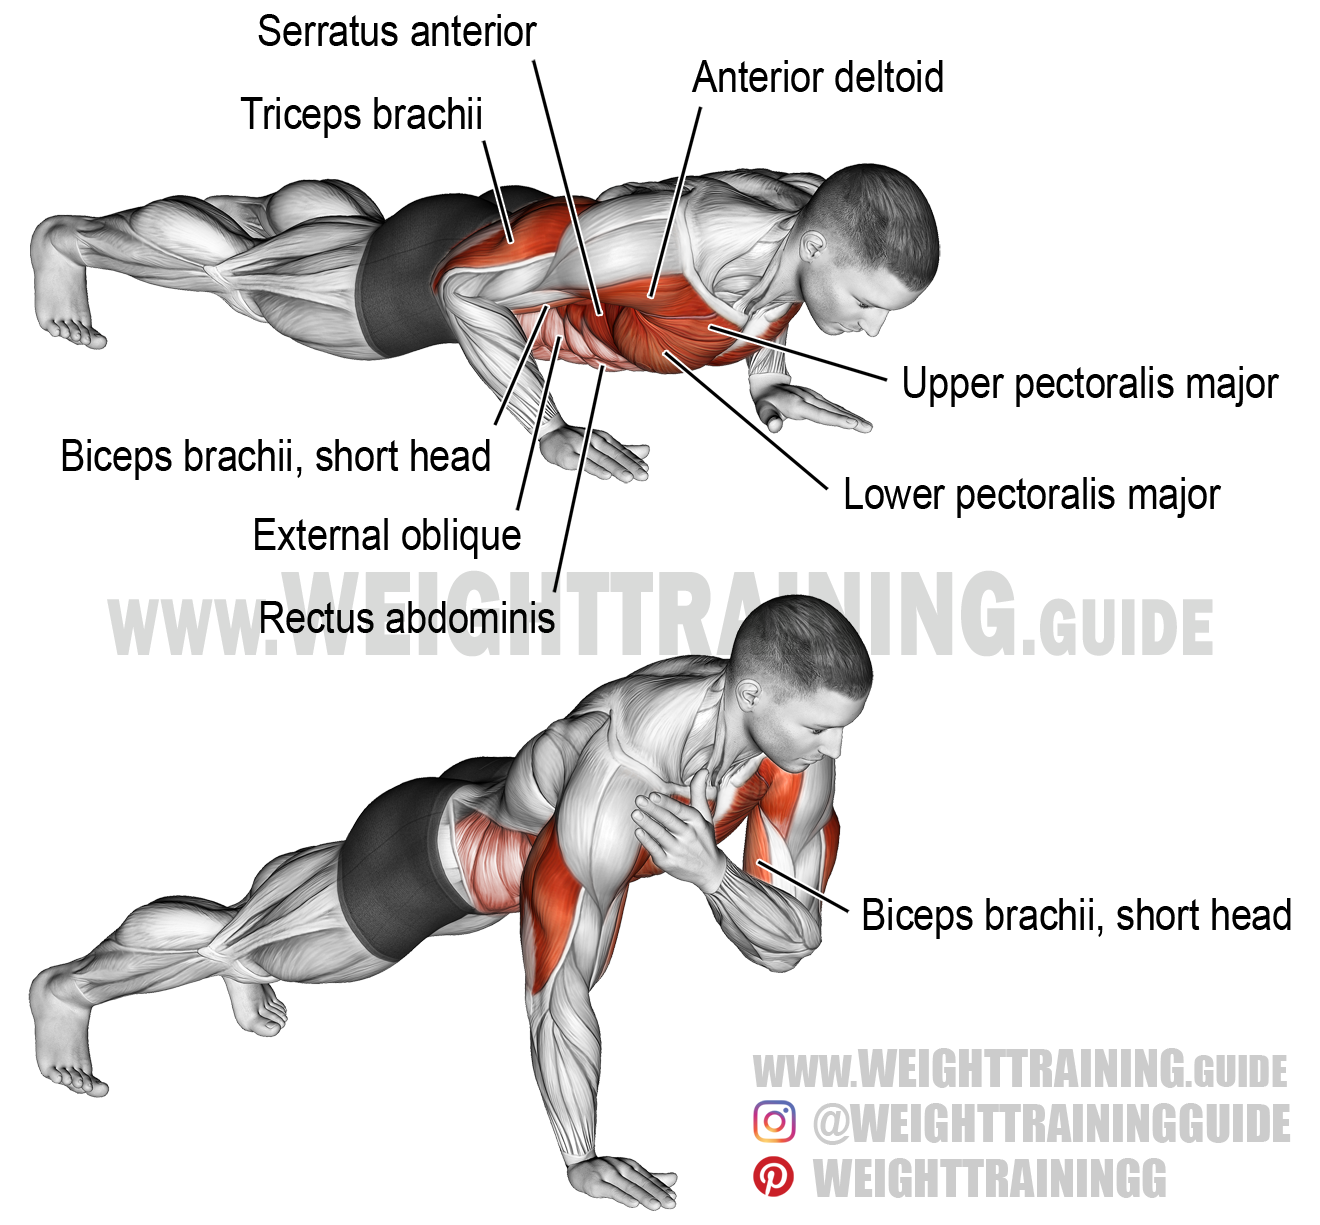 Shoulder Tap Push Up Exercise Guide And Video